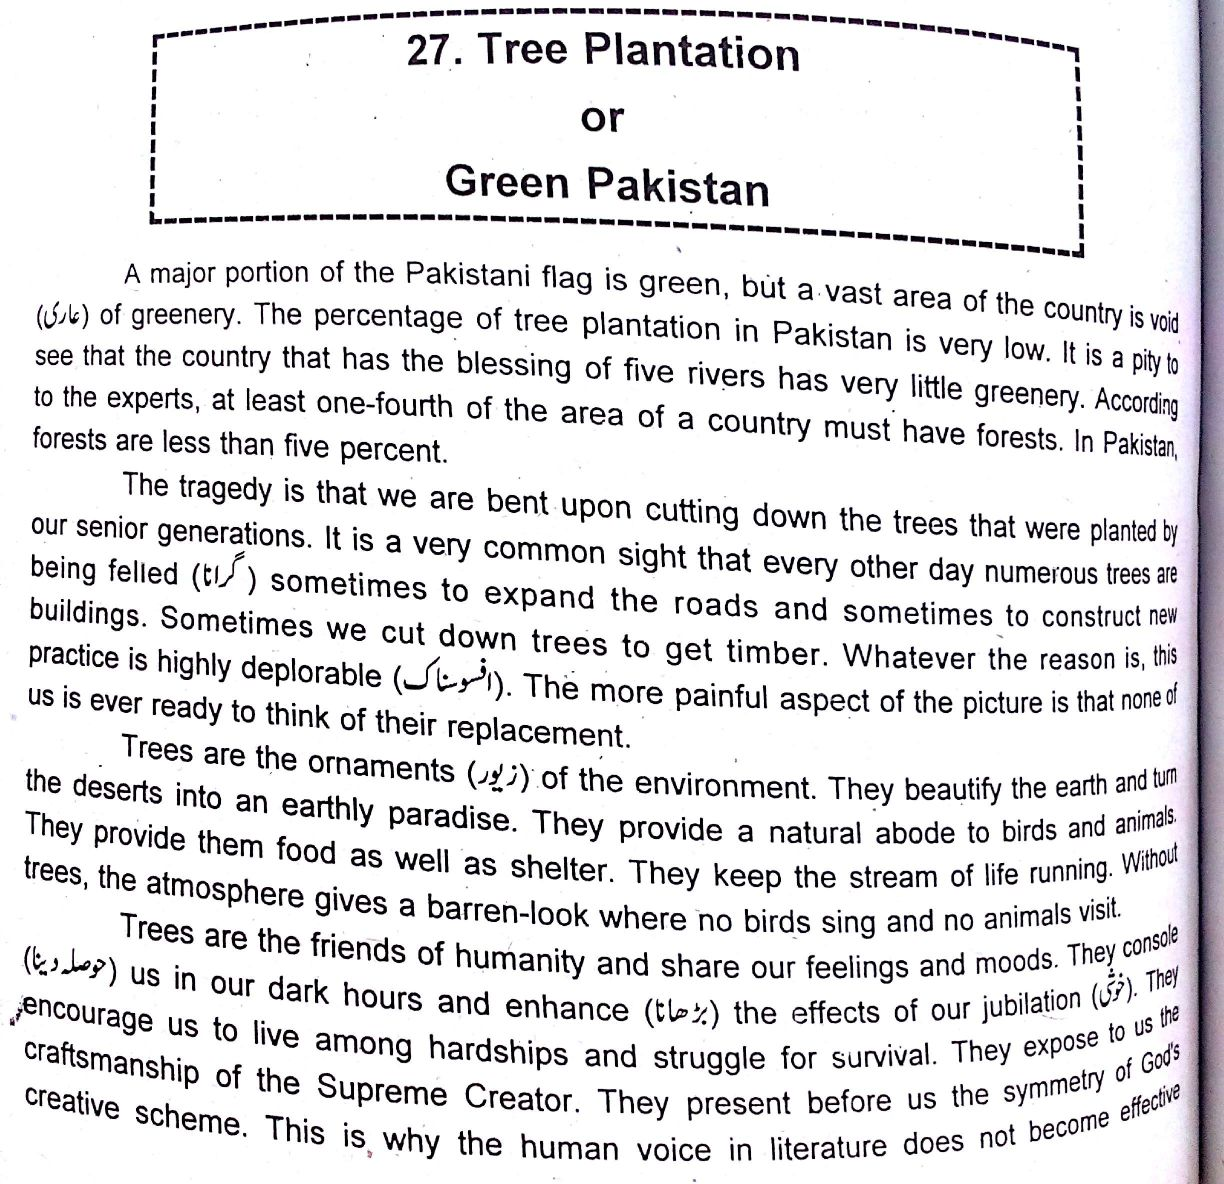 essay on tree plantation Introduction: without oxygen we cannot live for a moment even without oxygen, the animal world will die away trees make the oxygen and spreads it in the air.